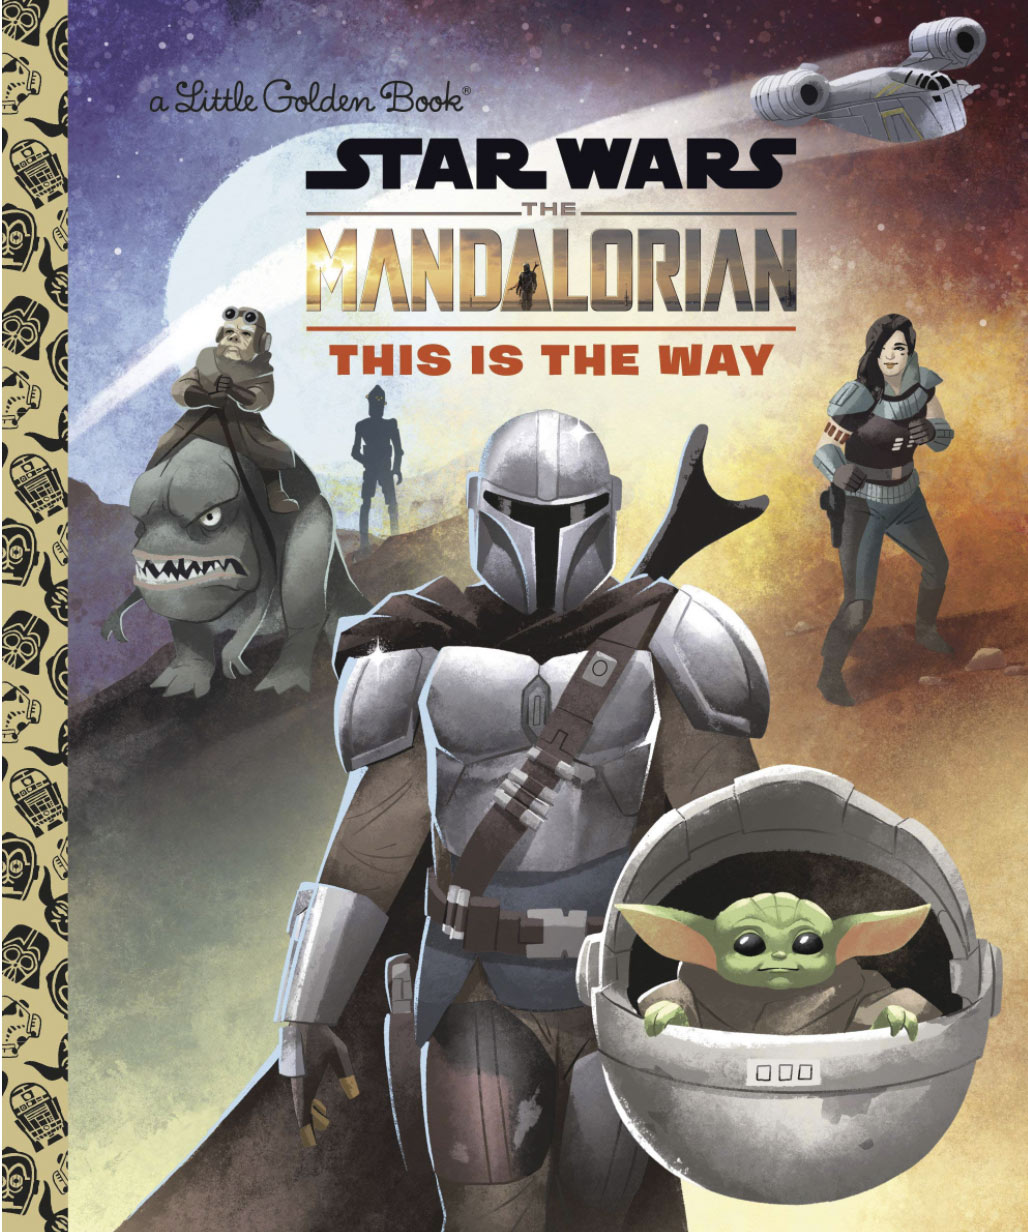 Golden Books Mandalorian adventures